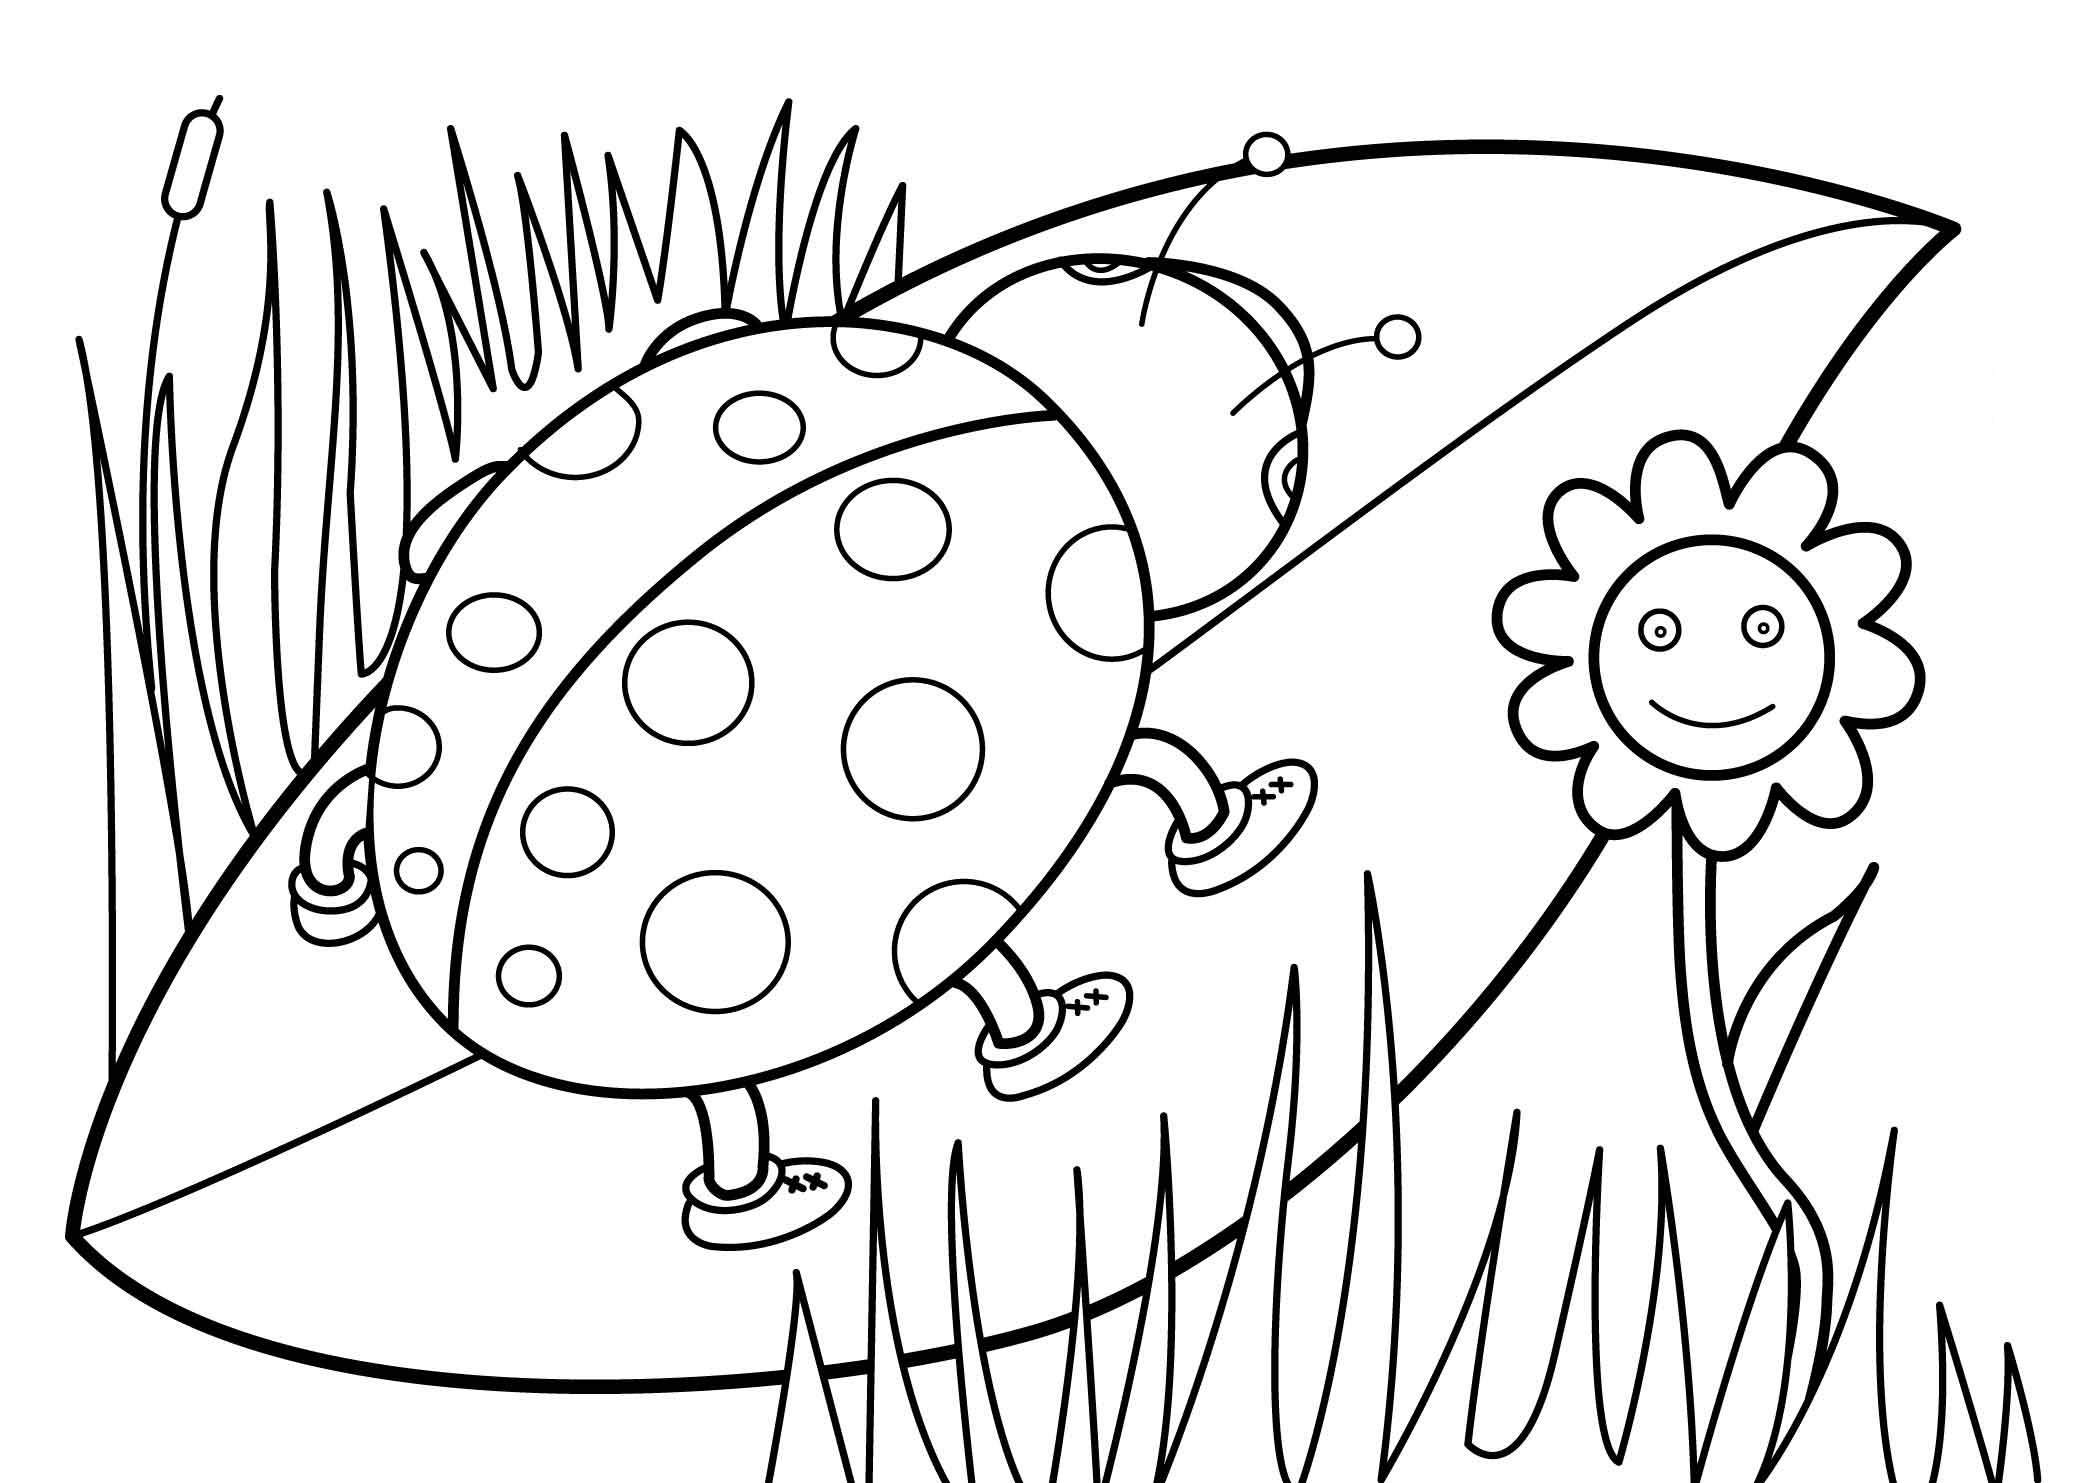 coloring images for kids 30 best coloring pages for kids we need fun for images kids coloring